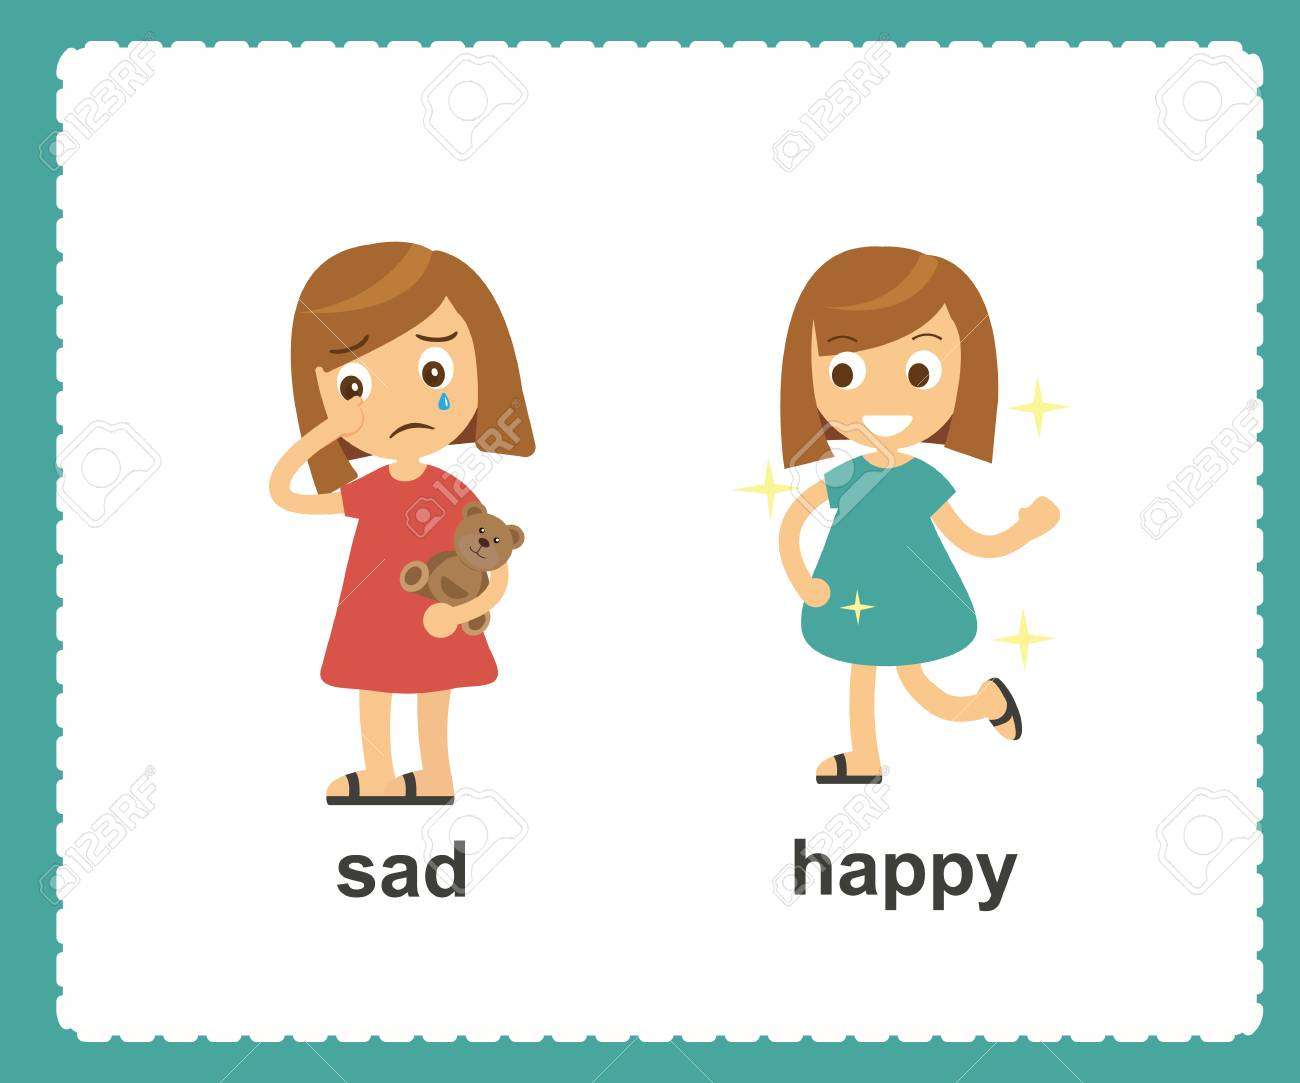 Opposite English Words sad and happy vector illustration.